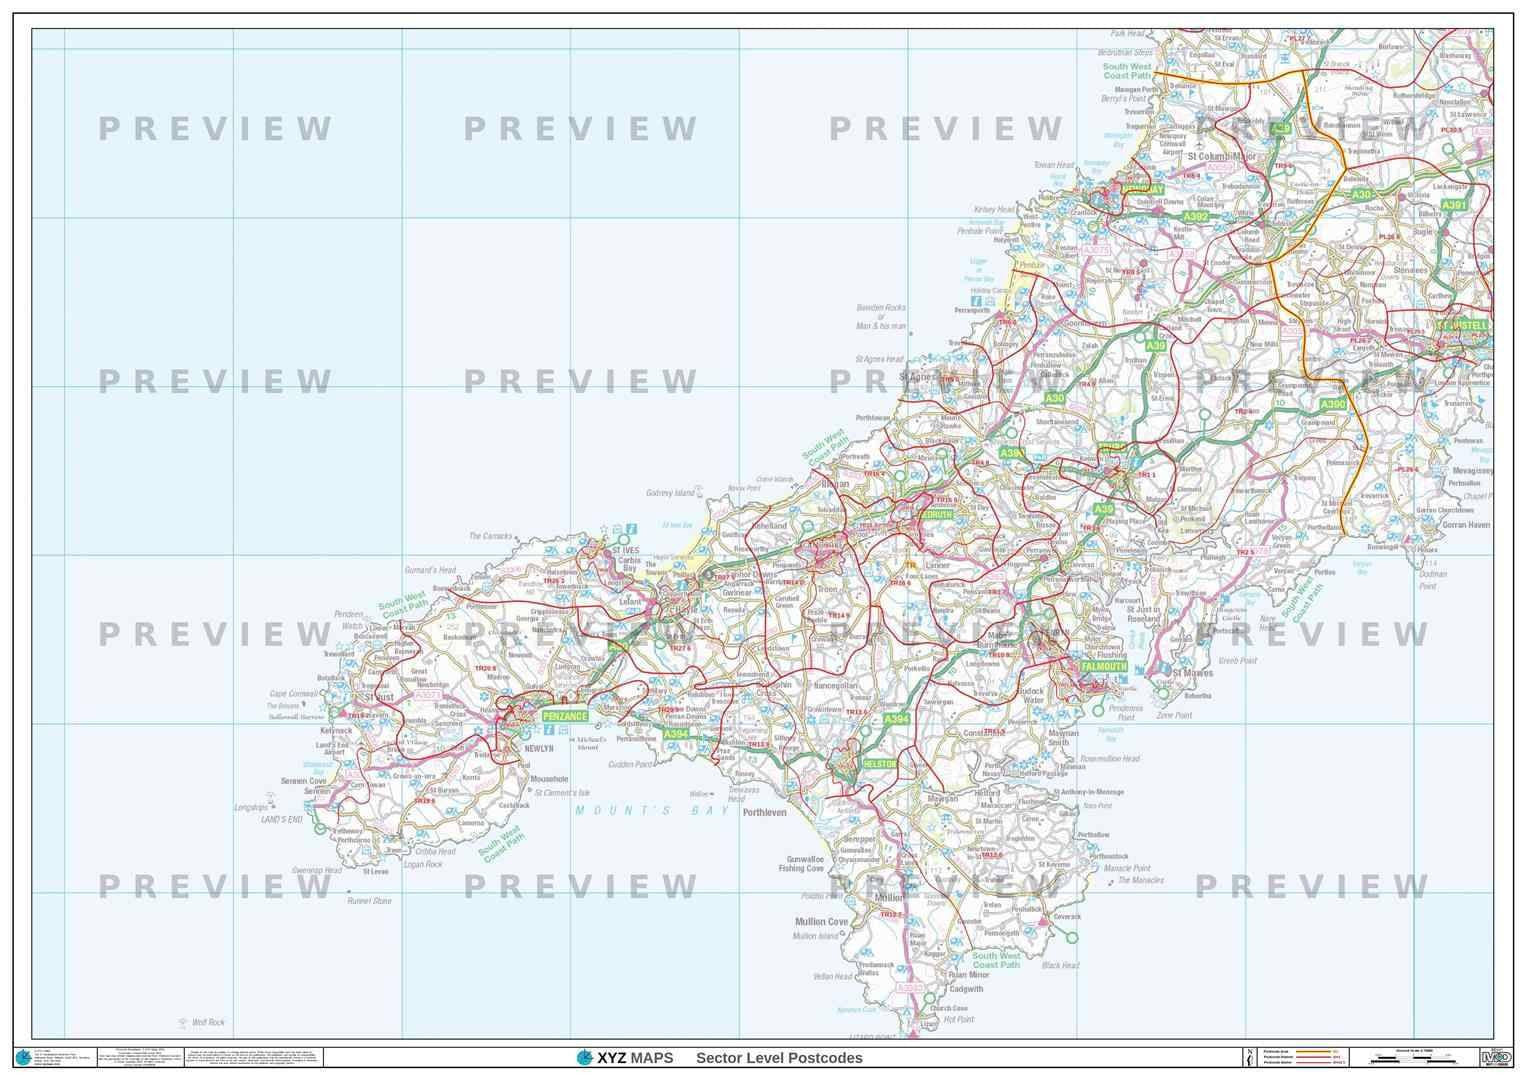 TR Postcode Map for the Truro Postcode Area GIF or PDF Download